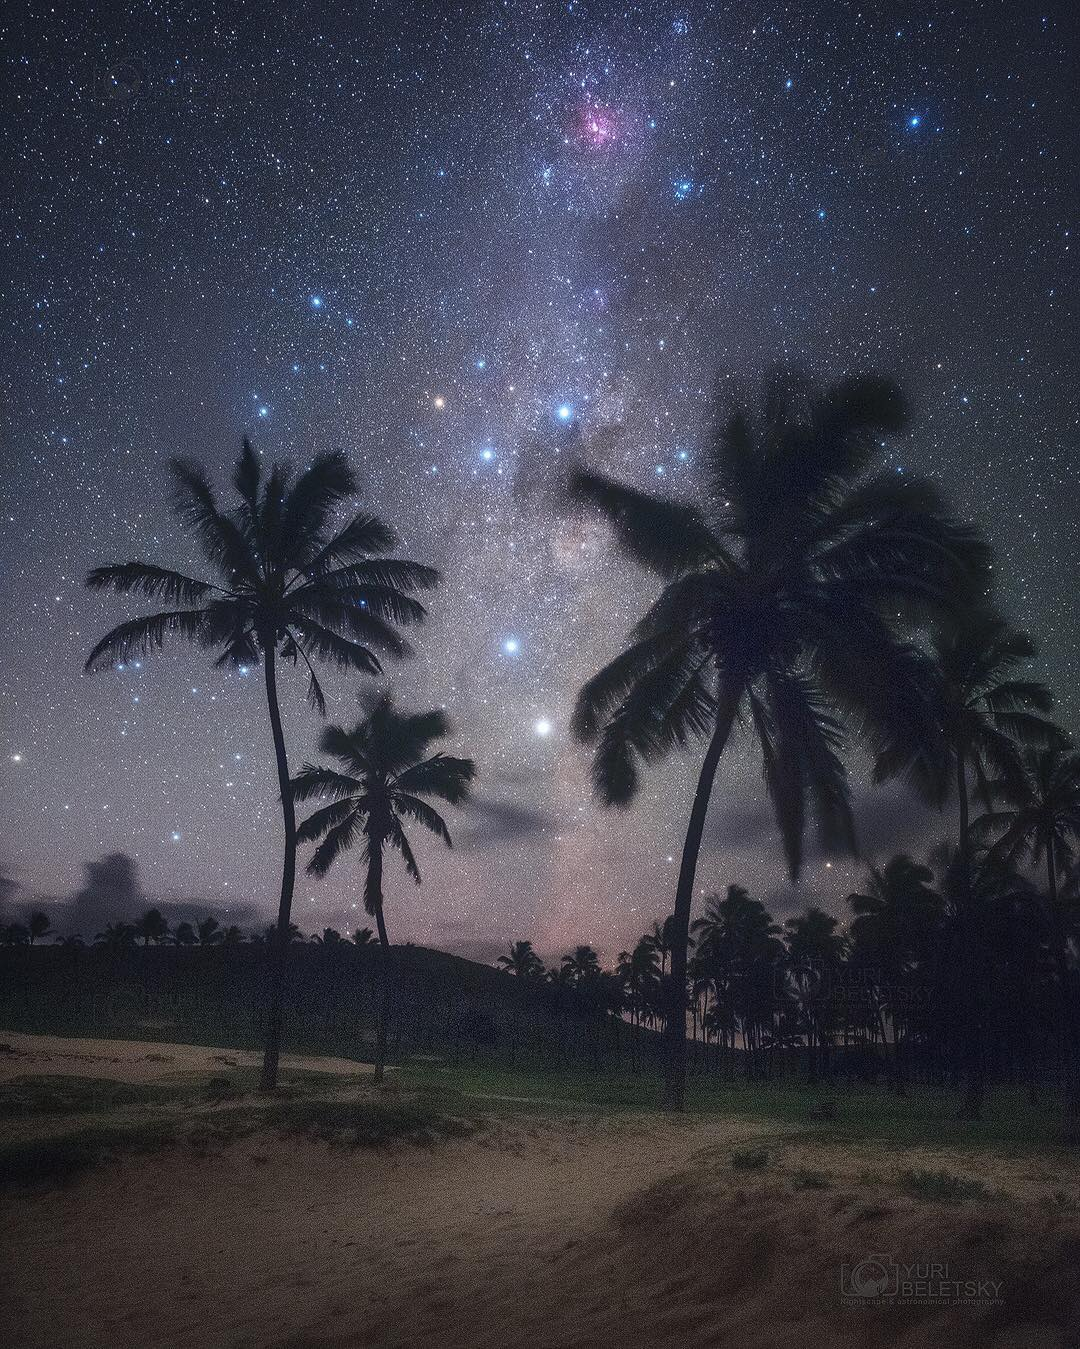 Stargazing at a Remote Beach